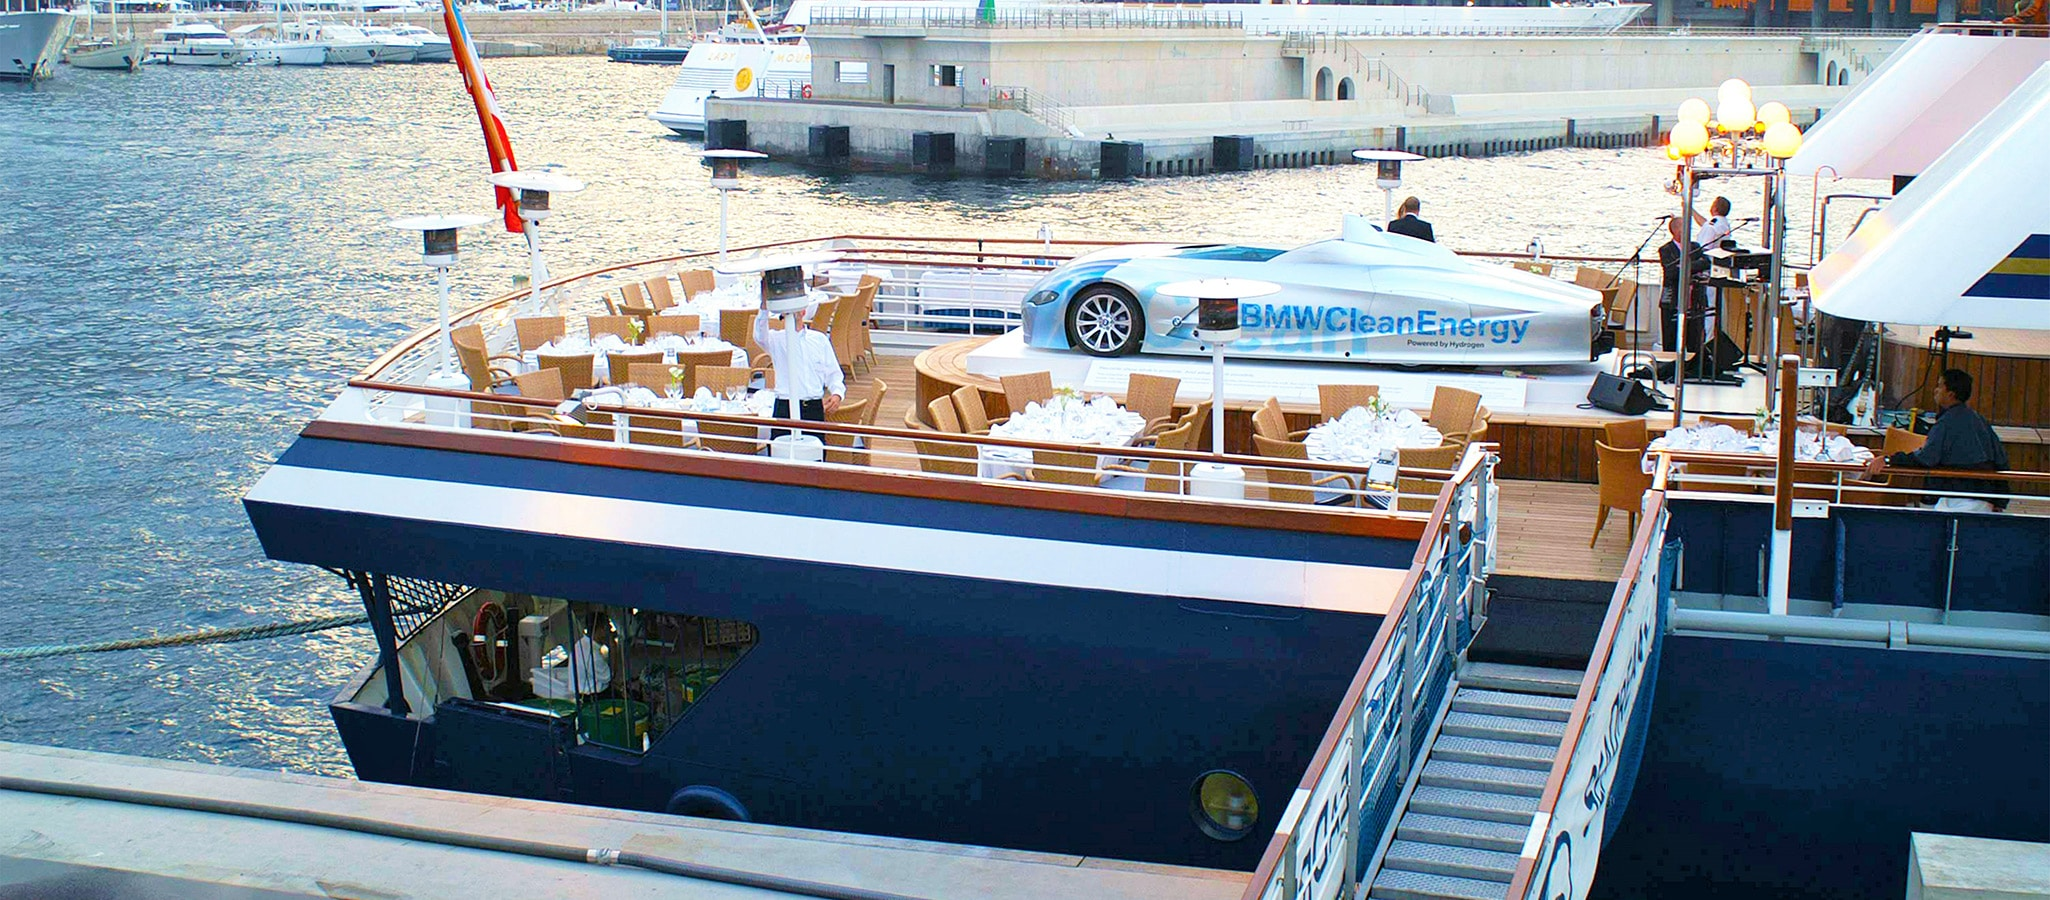 If required, OceanEvent transforms the pool deck into spectacular presentation spaces.